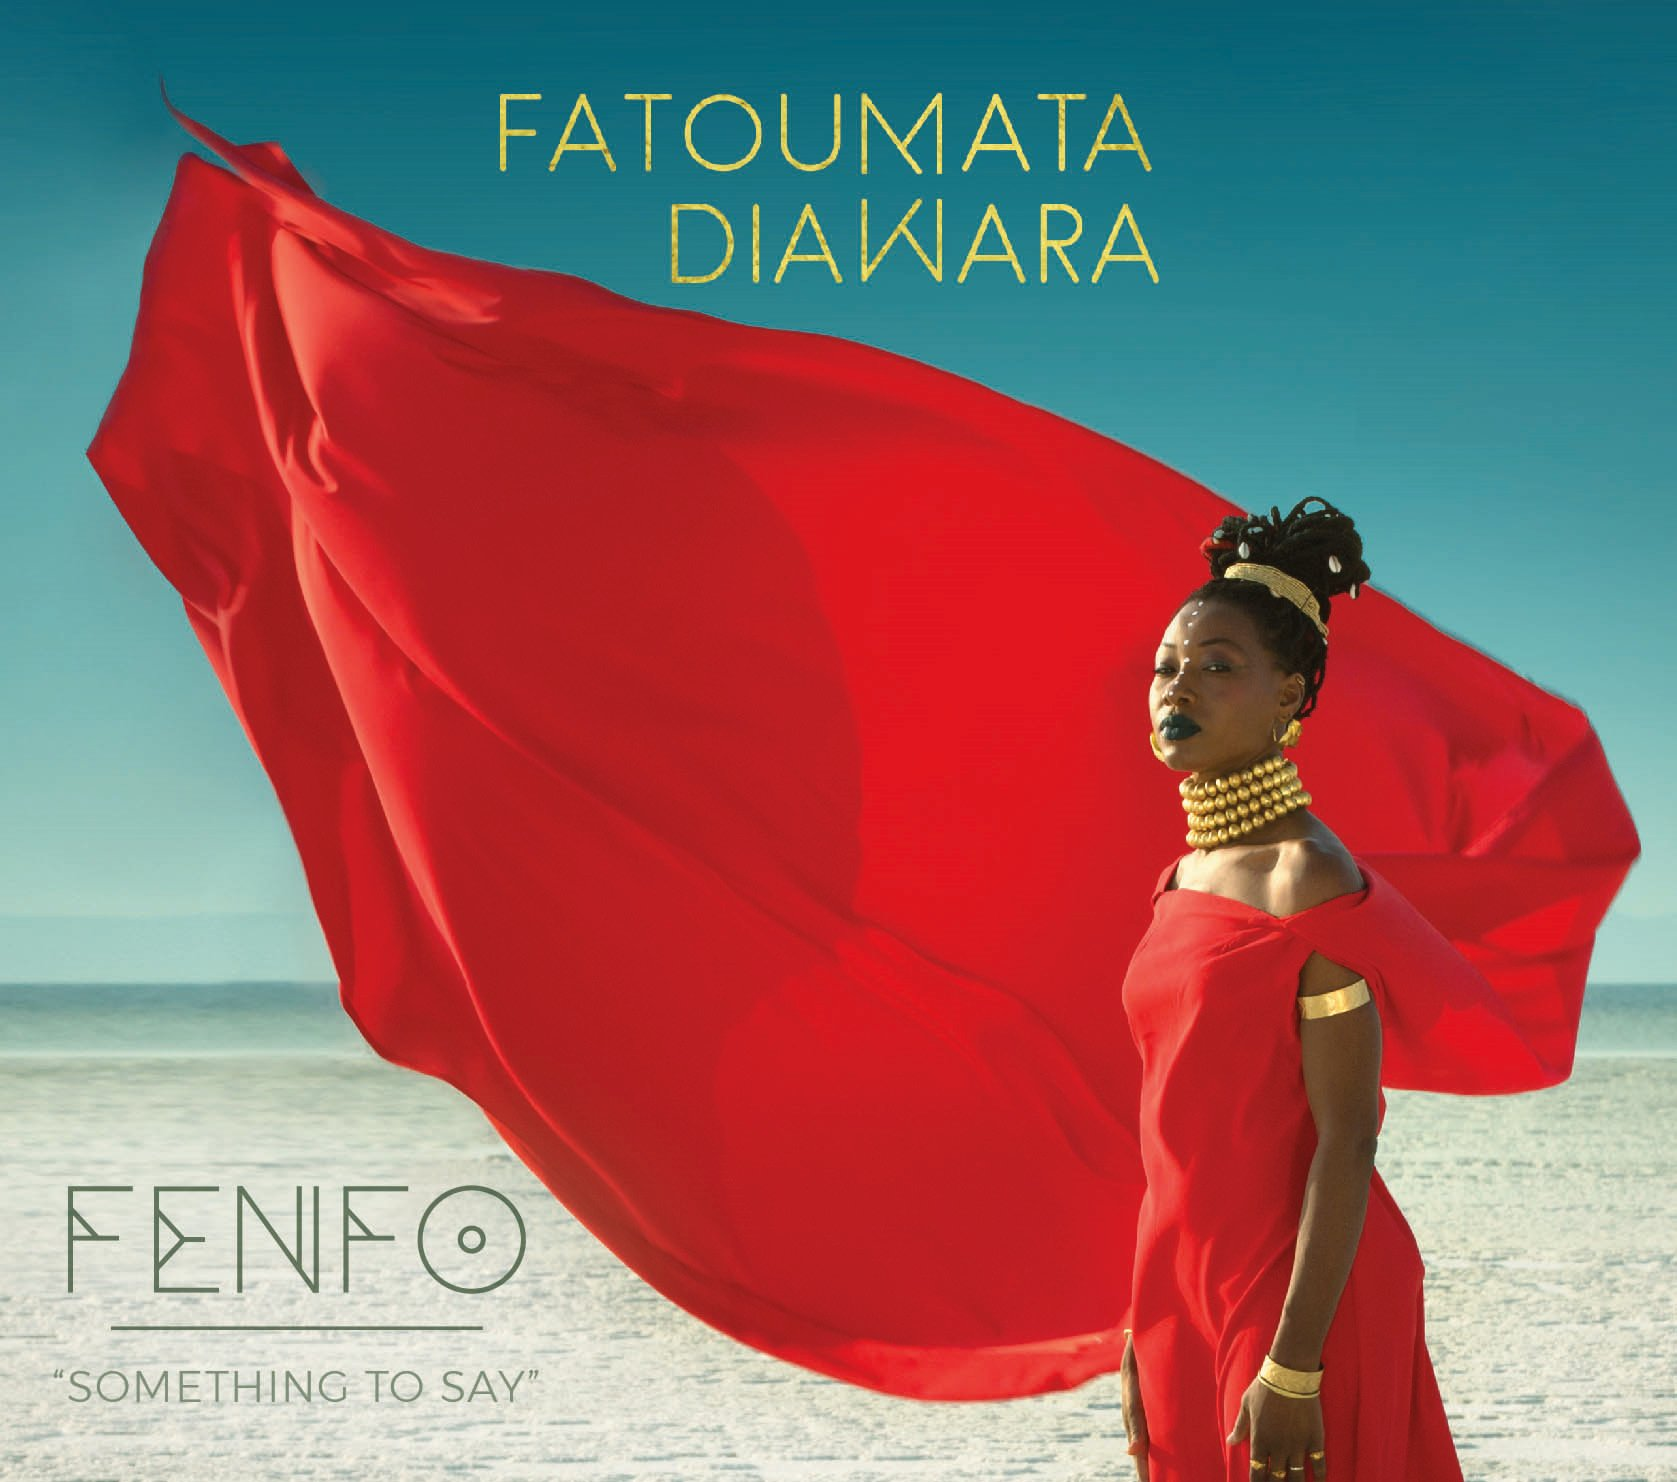 cover-fatoumata-diawara-fenfo-2018-world